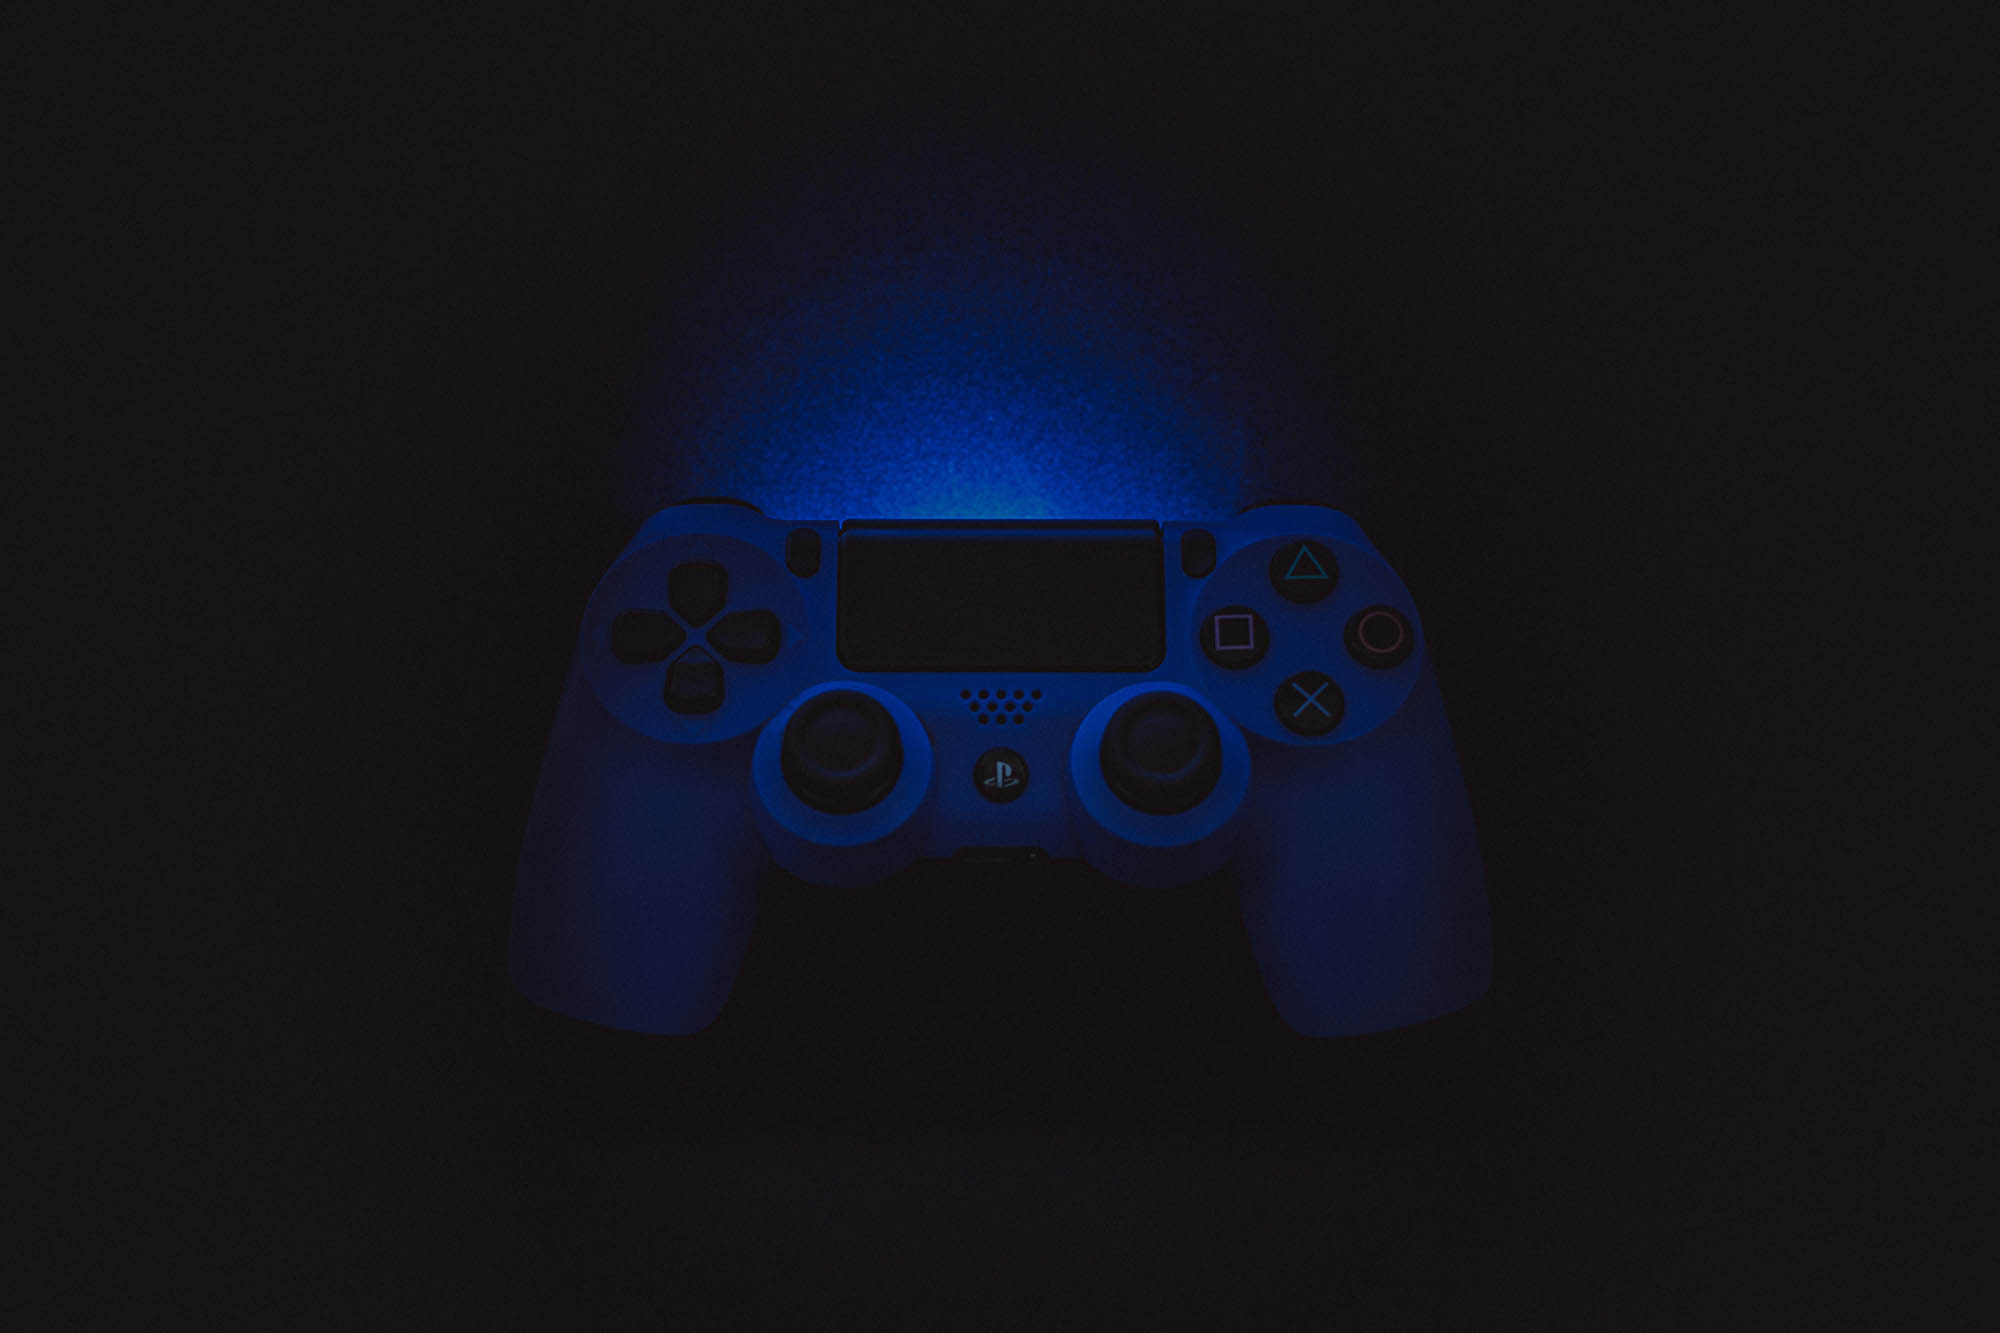 Staying at home: the staggering worldwide impact on the digital games industry